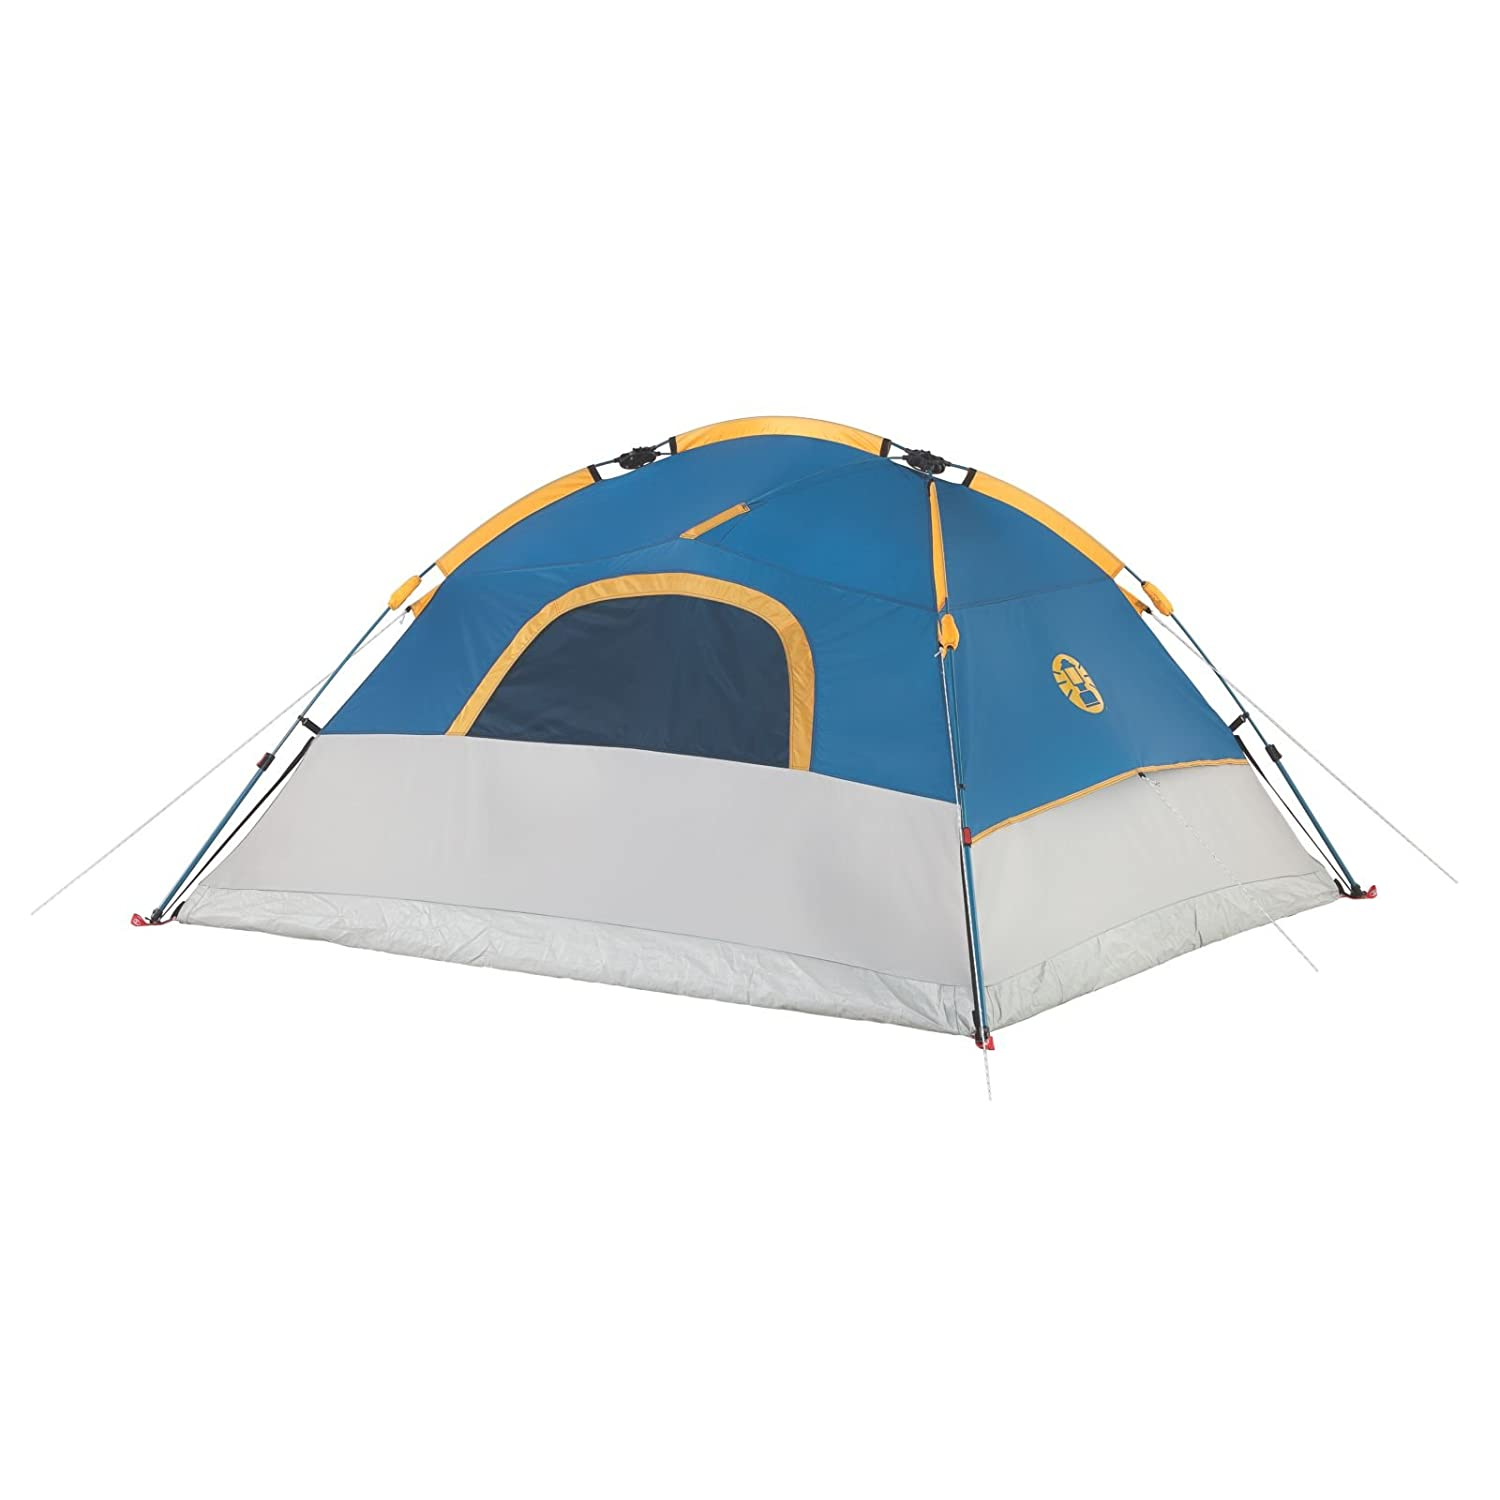 Amazon.com  Coleman C&ing 4 Person Flatiron Instant Dome Tent  Sports u0026 Outdoors  sc 1 st  Amazon.com & Amazon.com : Coleman Camping 4 Person Flatiron Instant Dome Tent ...